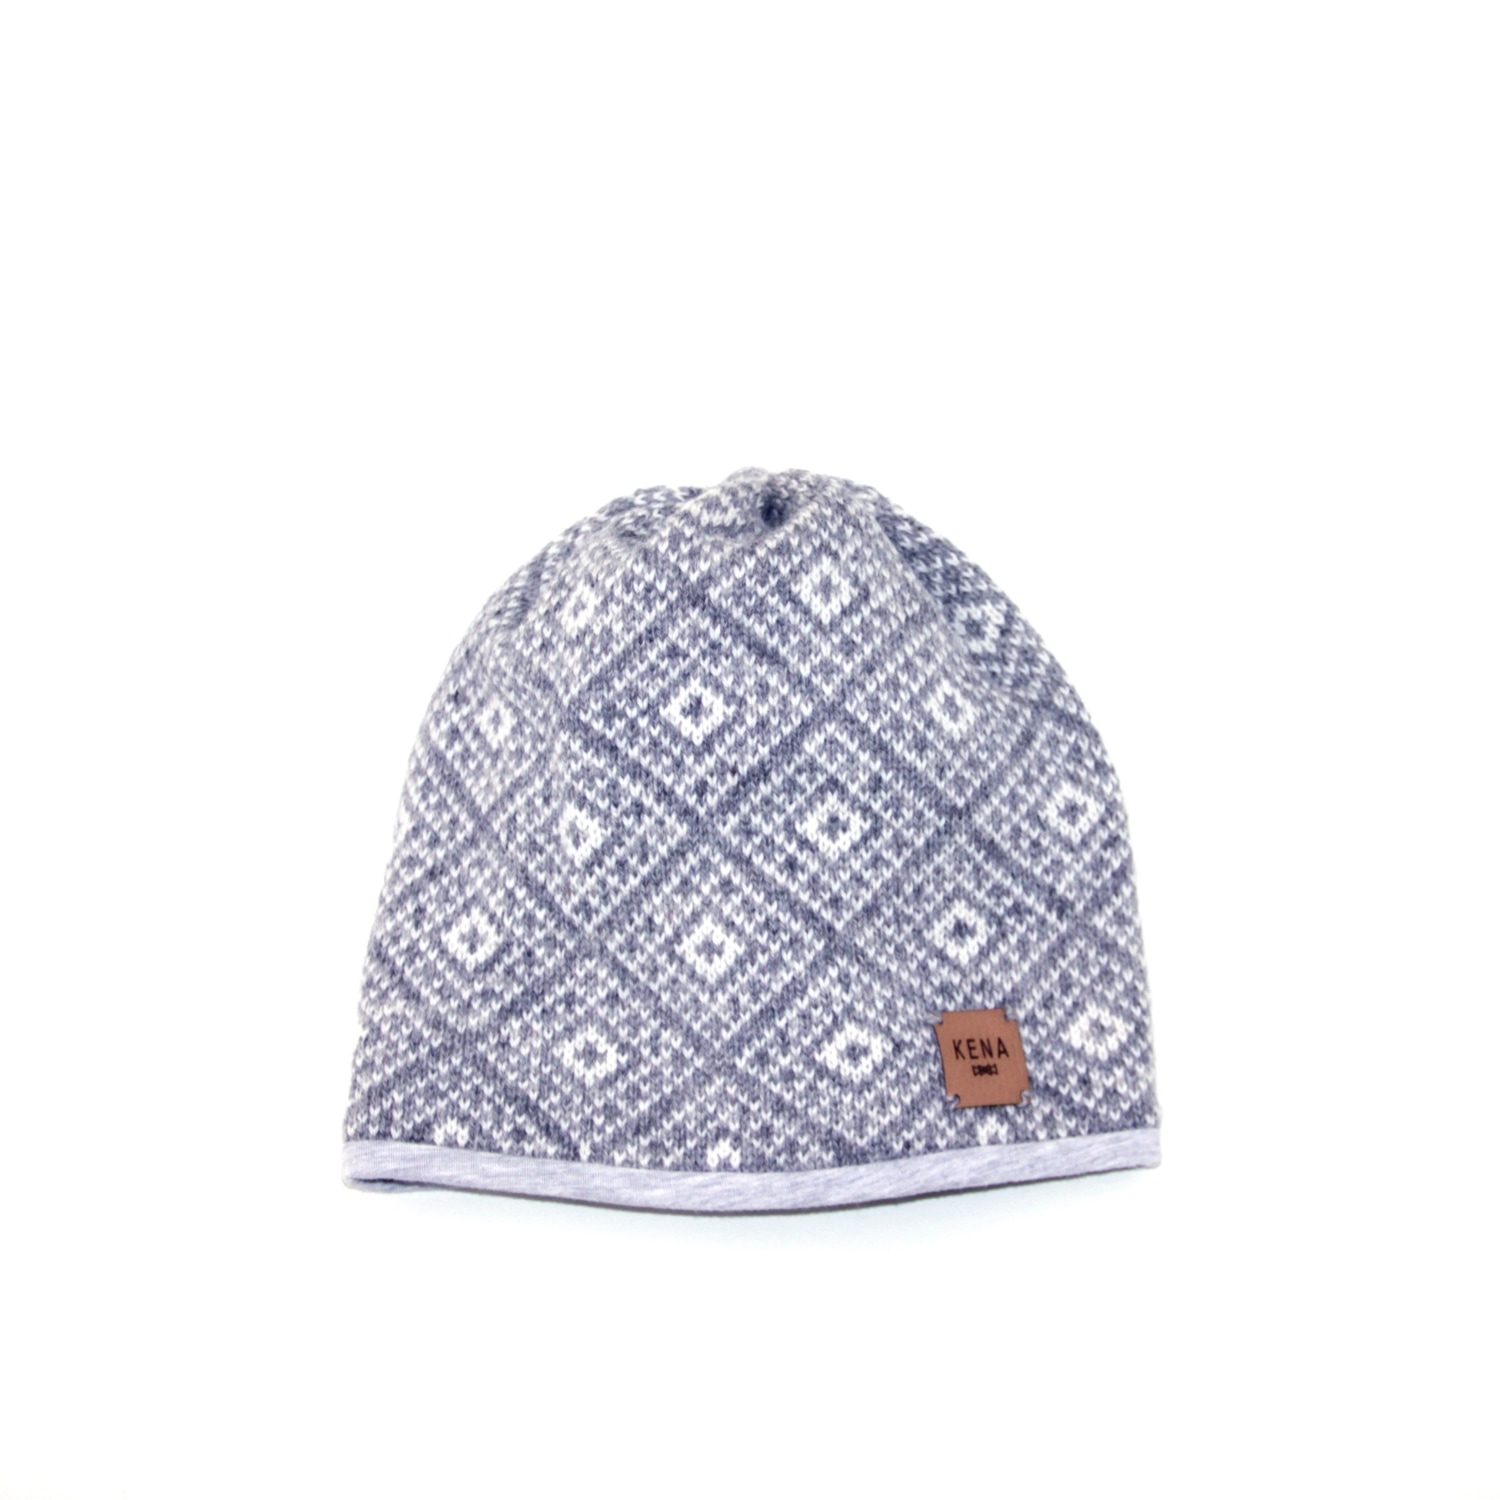 Knitted wool and organic cotton beanie hat